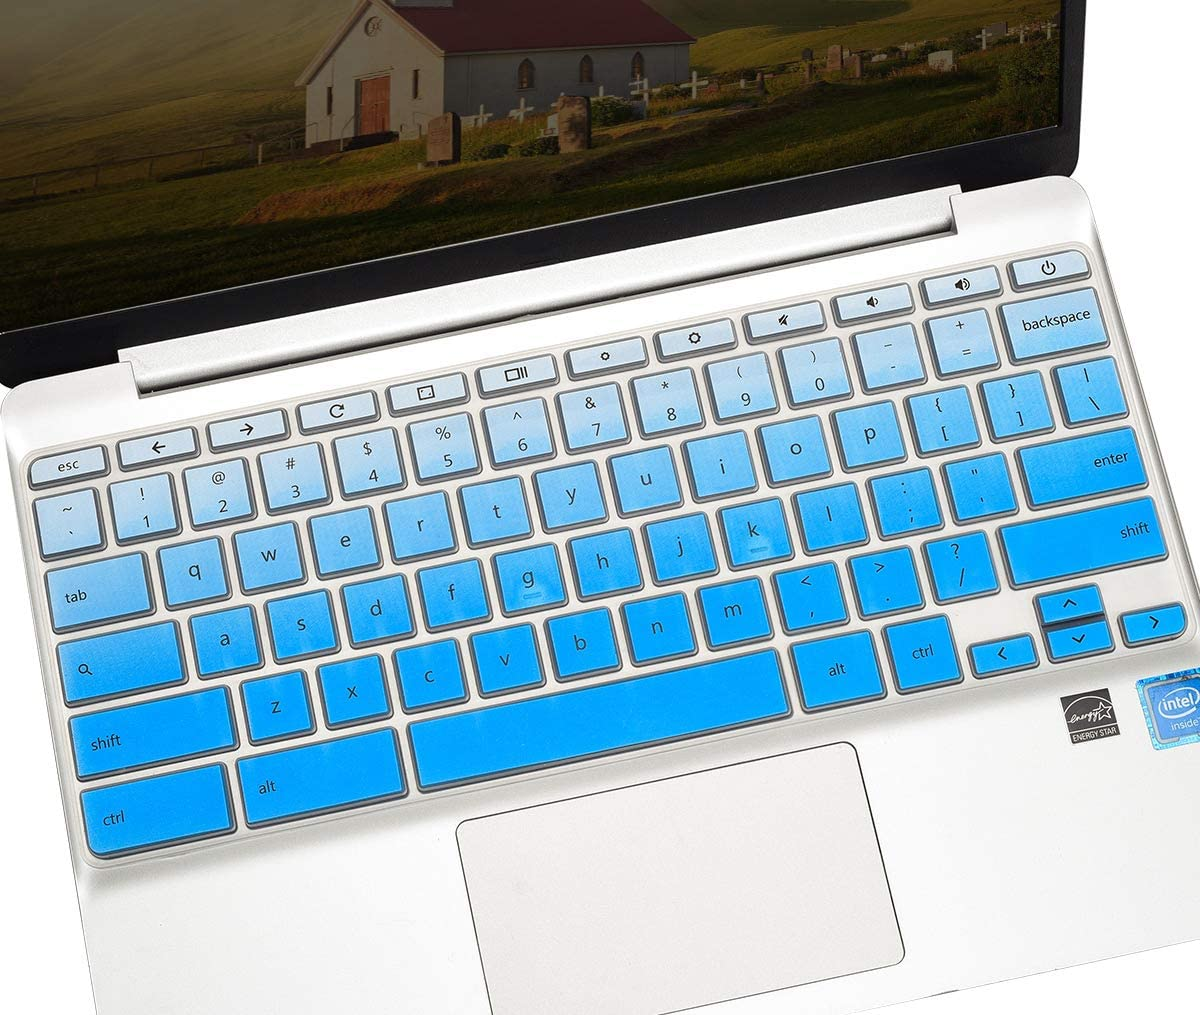 Keyboard Baltimore Mall Cover All items in the store Skin for 11.6